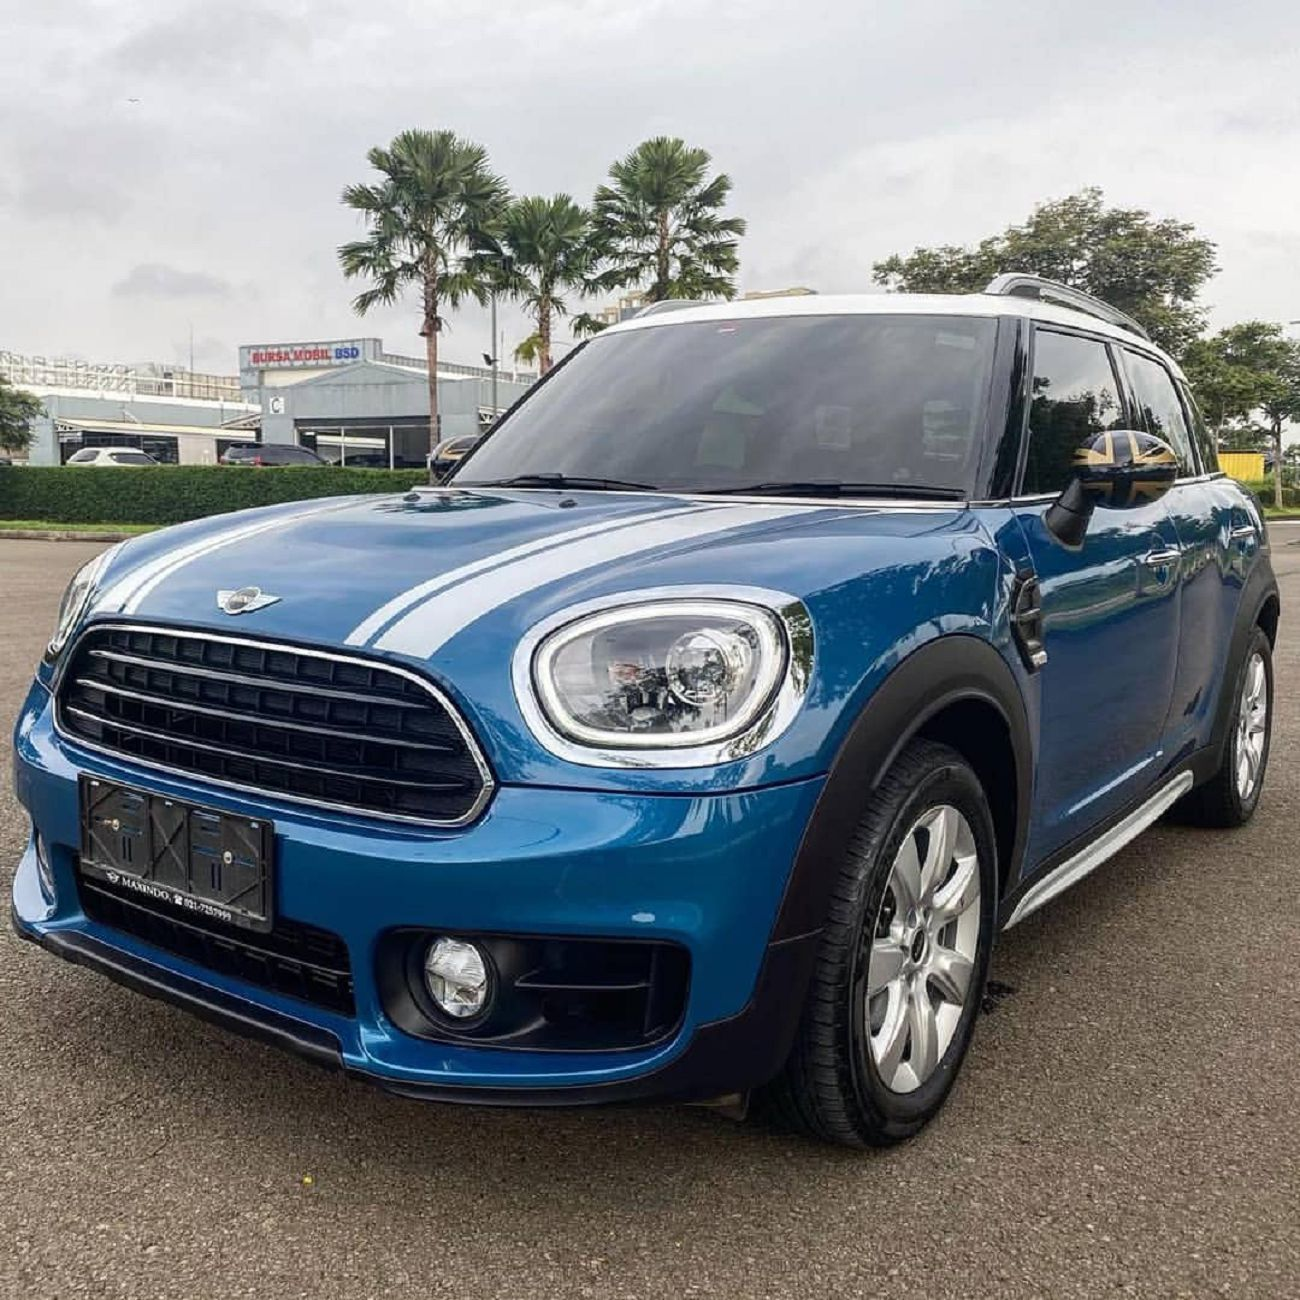 2021 Mini Countryman 2020 2017 Trims Length 2019 All4 Lease